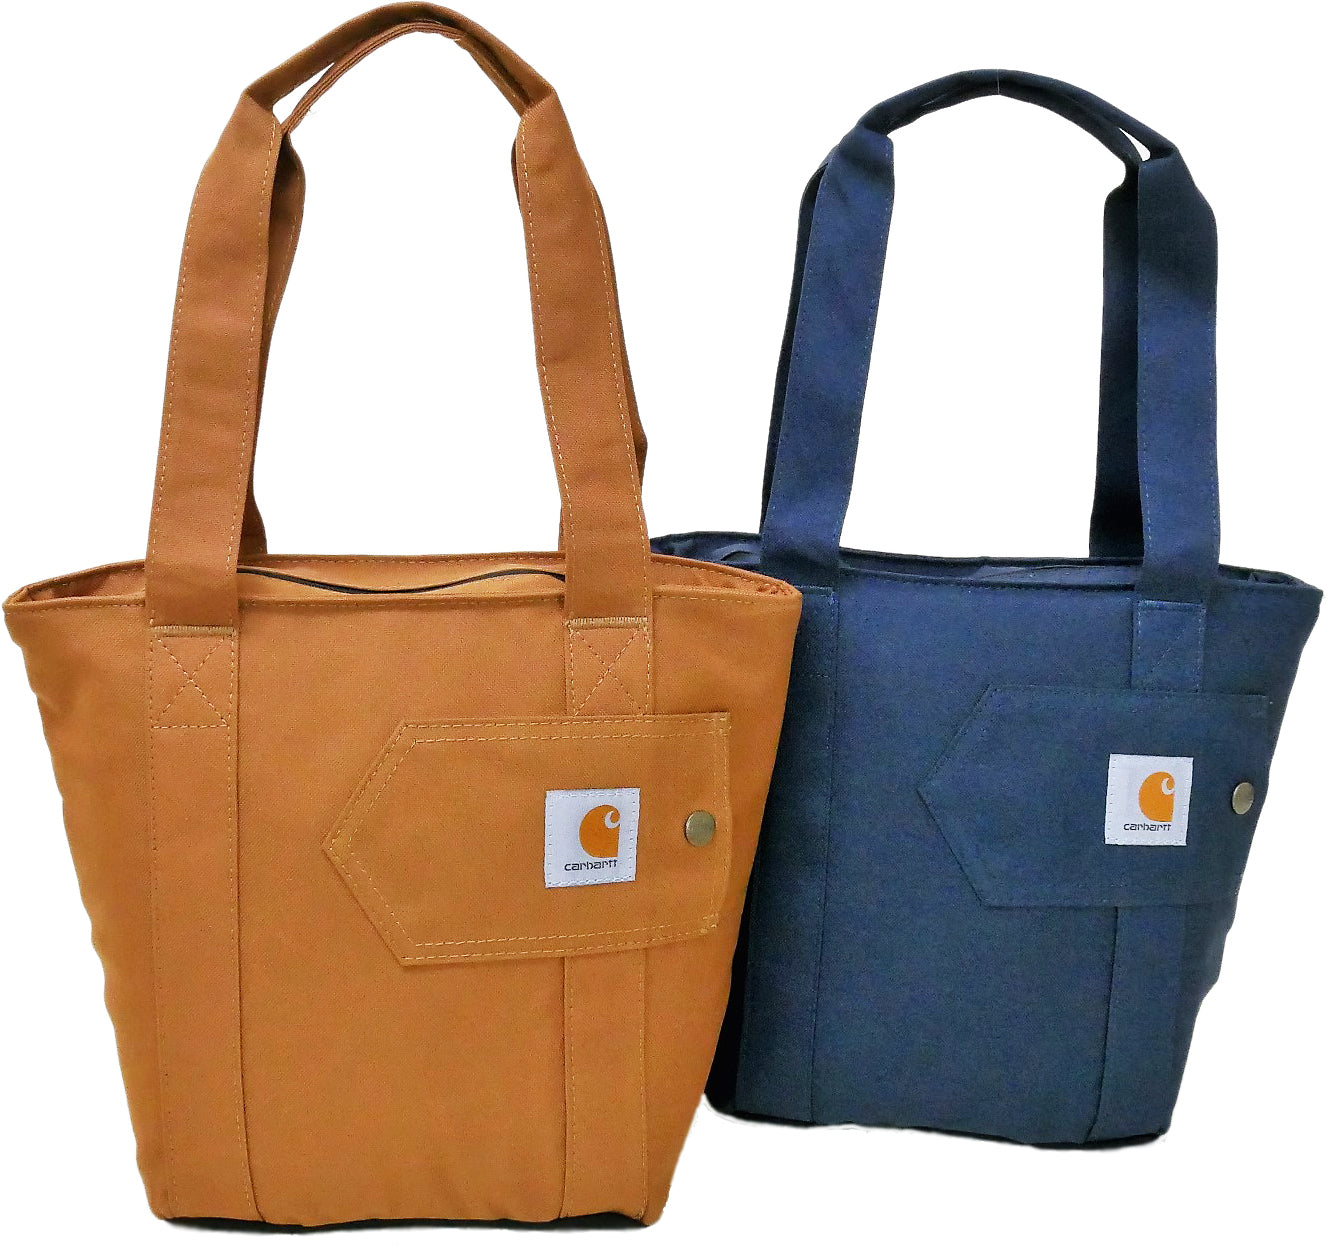 Carhartt INSULATED LUNCH TOTE商品画像